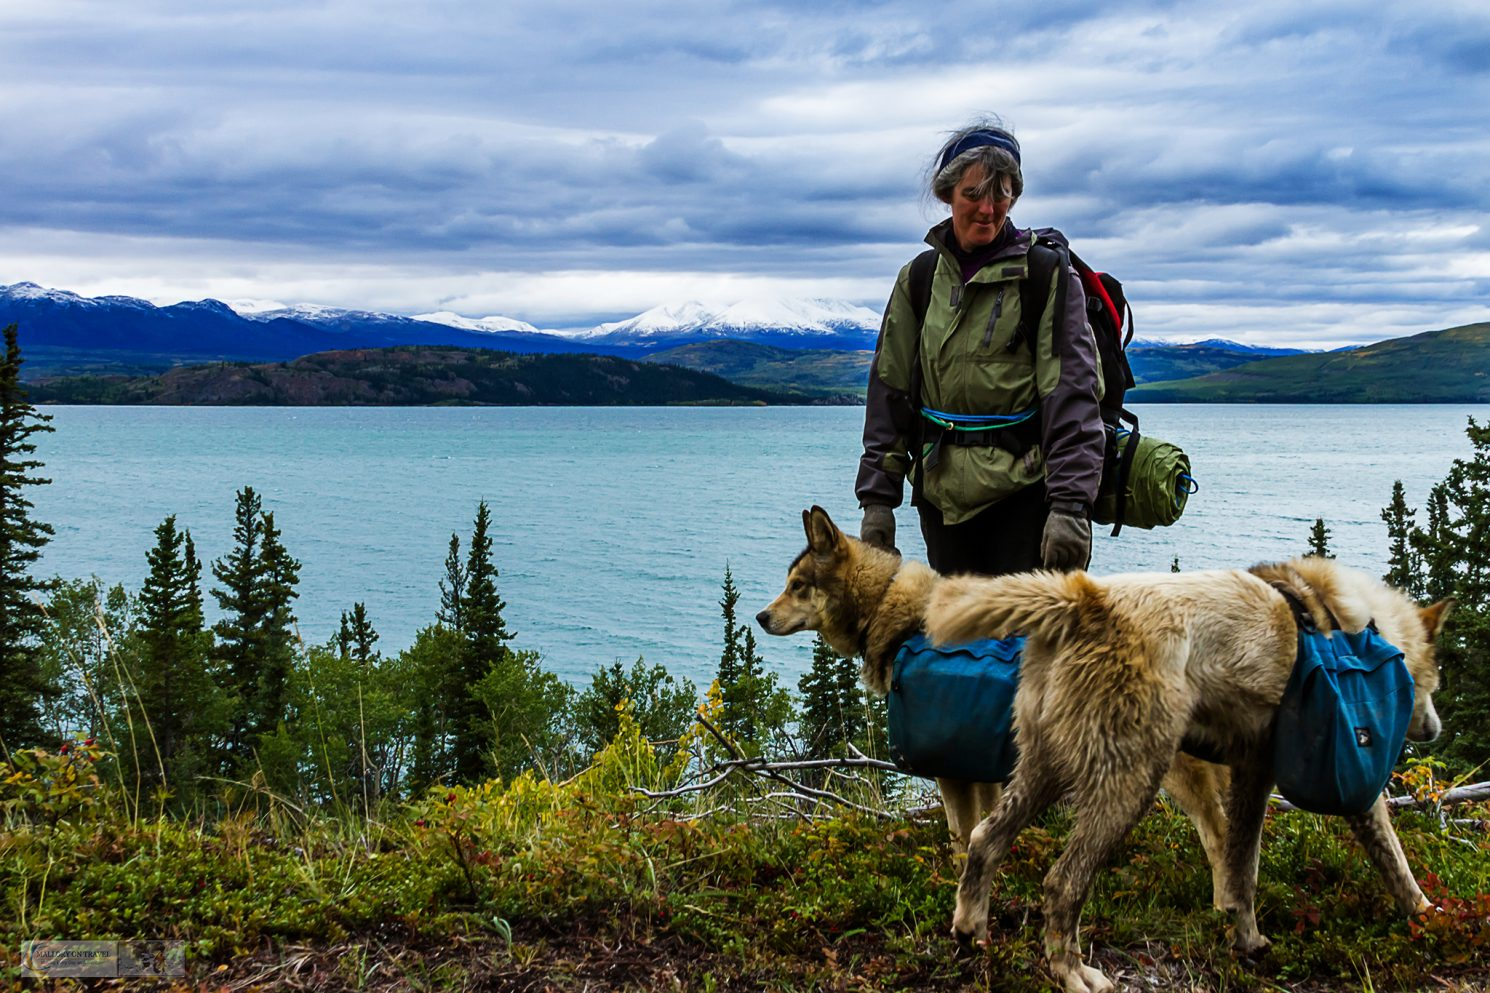 Jeninne Cathers and the sled dogs of Cathers Wilderness Adventures on the shores of Lake Laberge, near Whitehorse in The Yukon, Canada on Mallory on Travel adventure travel, photography, travel iain-mallory_yukon-010